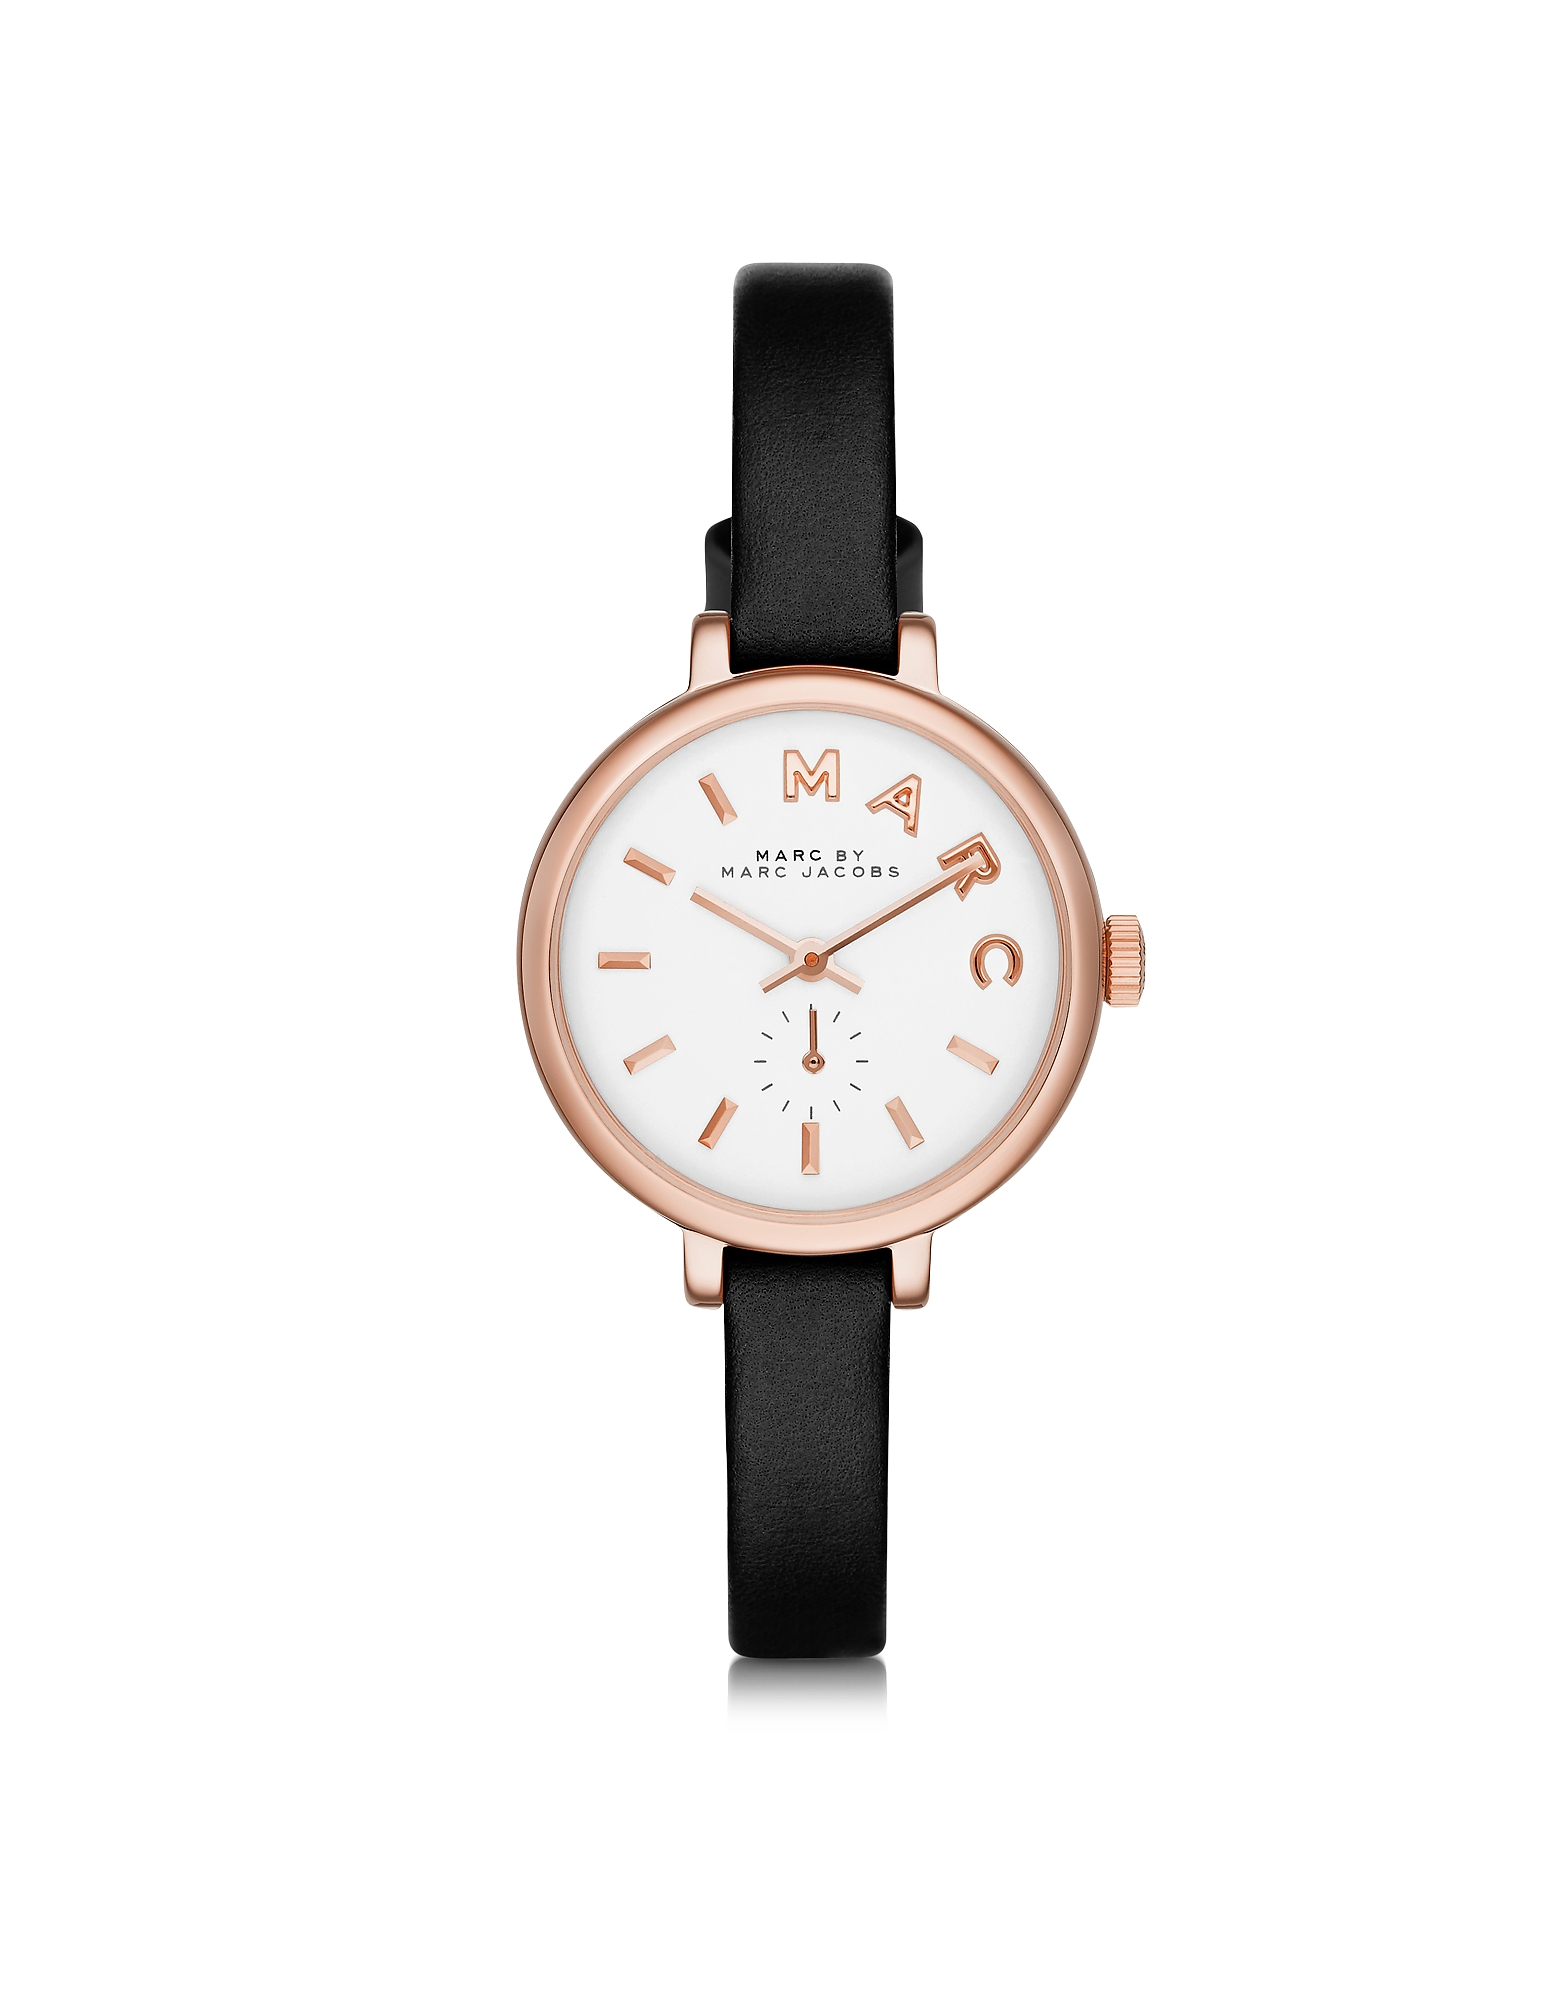 Marc by Marc Jacobs Women's Watches, Sally 28 MM Stainless Steel and Leather Strap Women's Watch